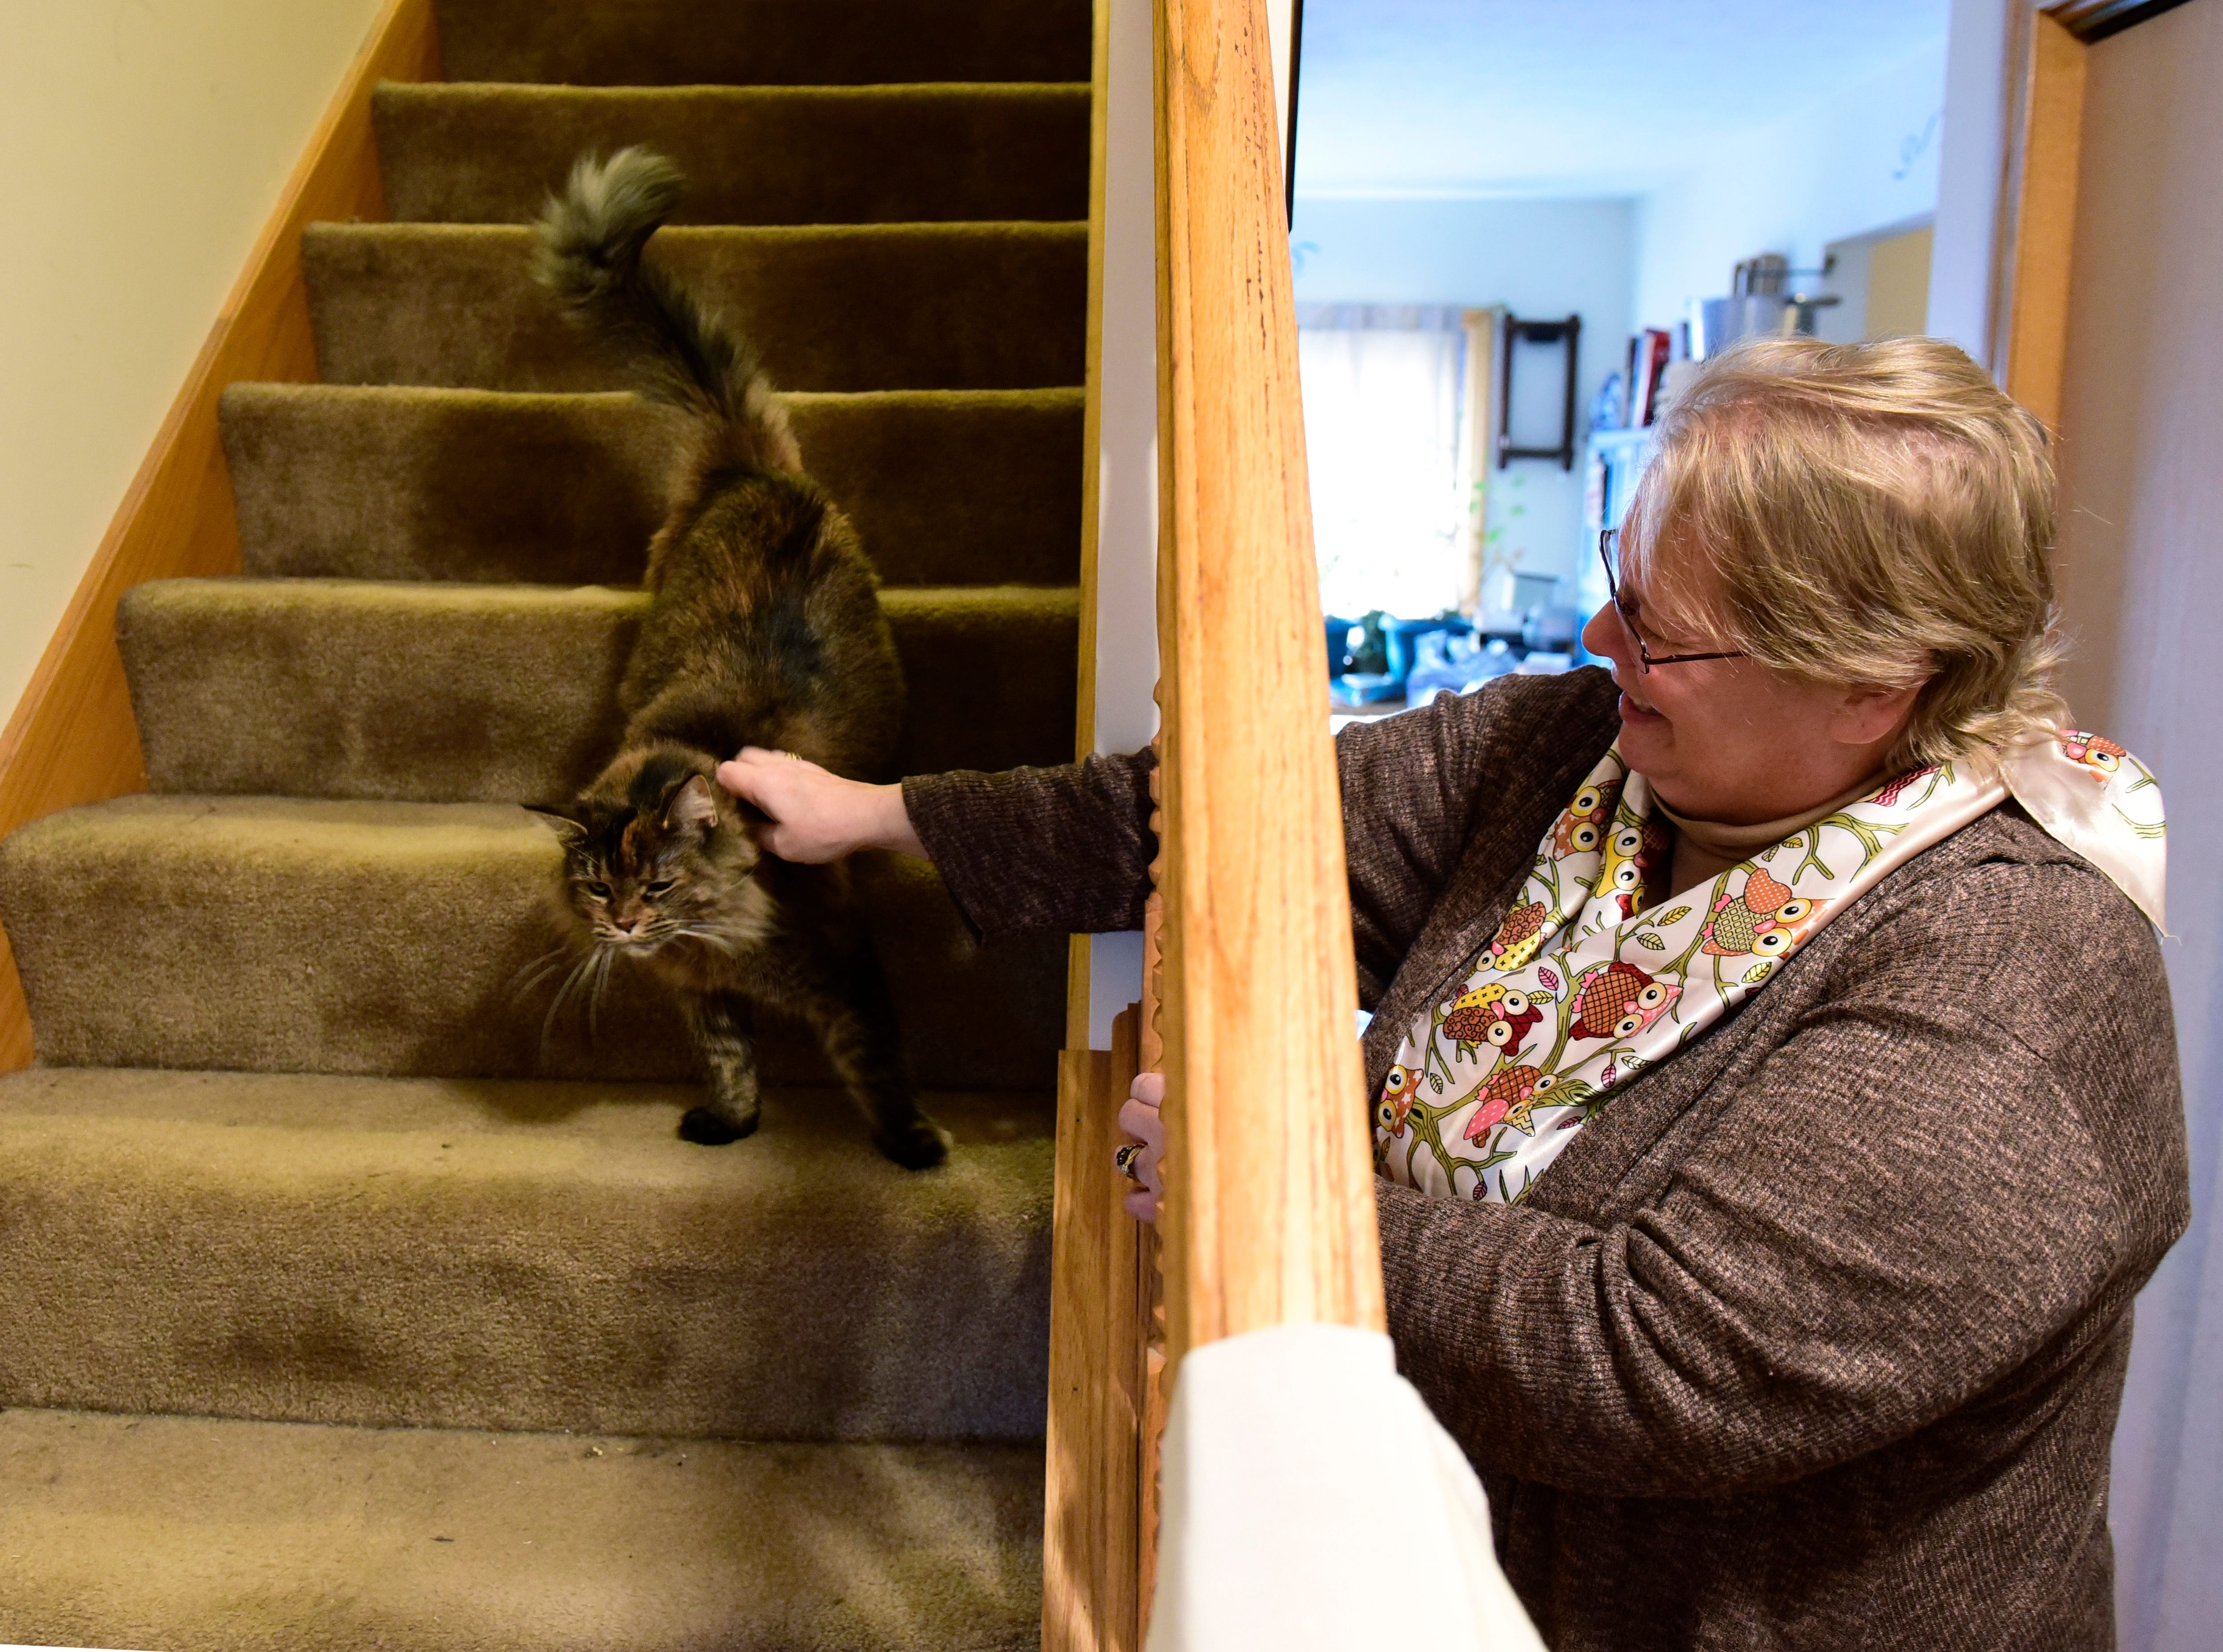 Rebekah Recker plays with her cat in her home. She said first came double vision in the middle of September, then her sight became blurred. Her balance started to fail and she has trouble walking around her home.